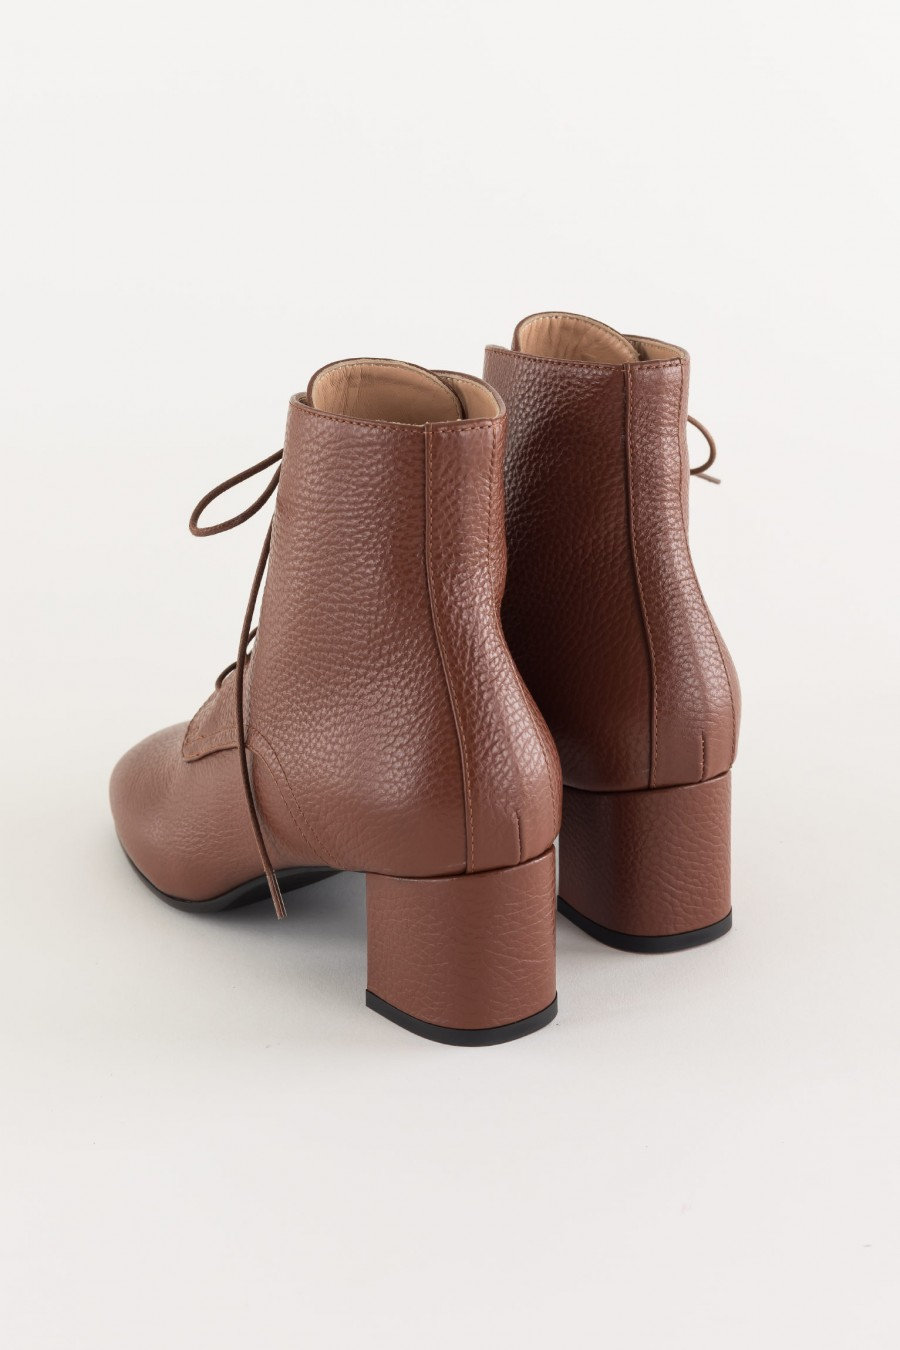 Lace-up ankle boots made in Italy